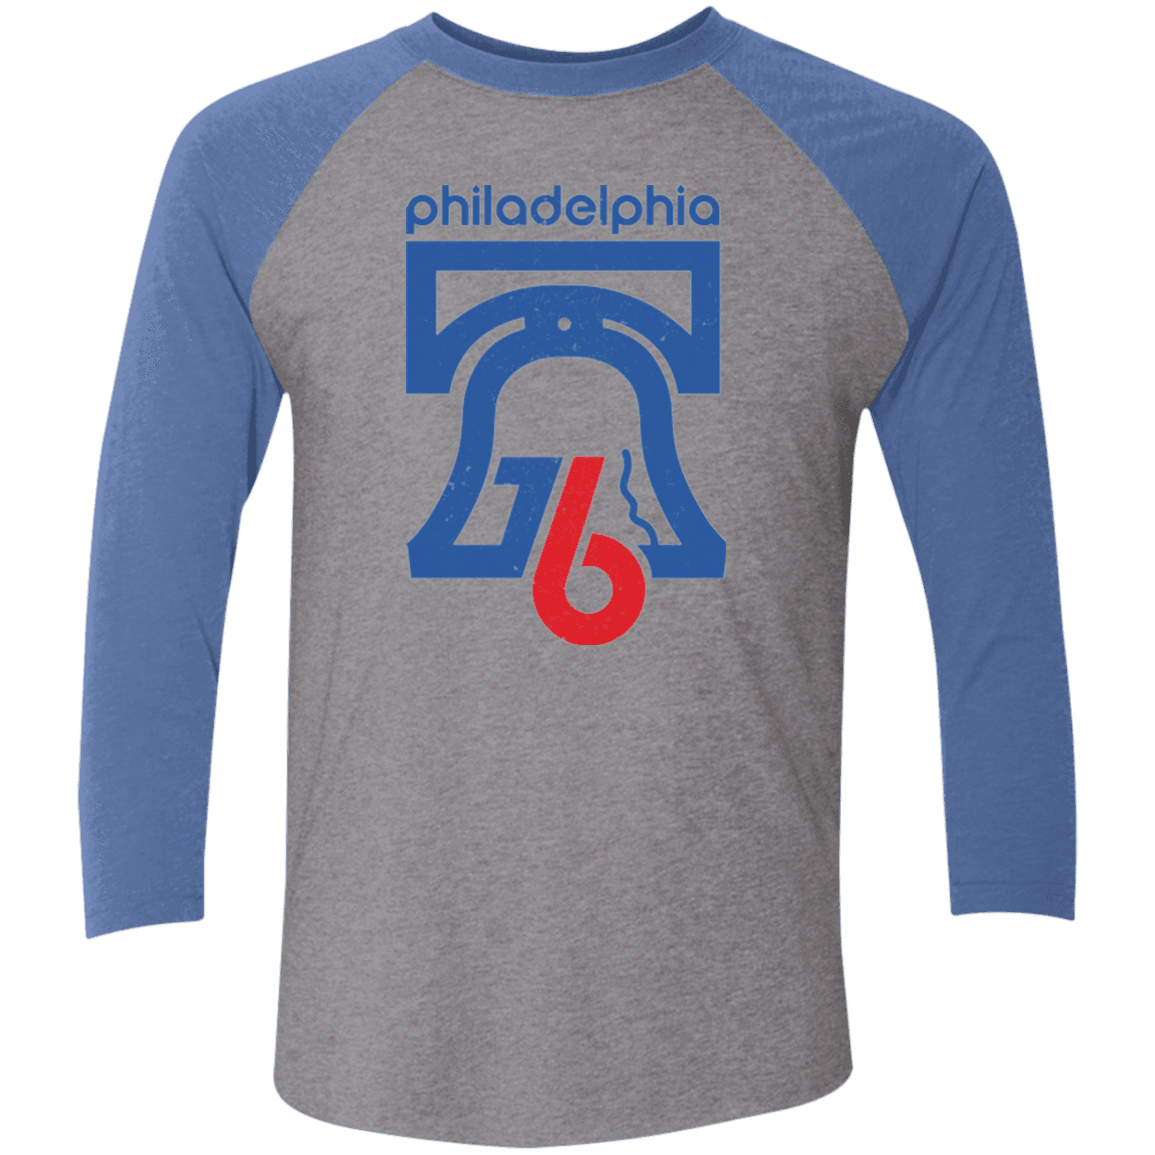 1976 Philadelphia Retro Tri-Blend 3/4 Sleeve Baseball Raglan T-Shirt - Generation T